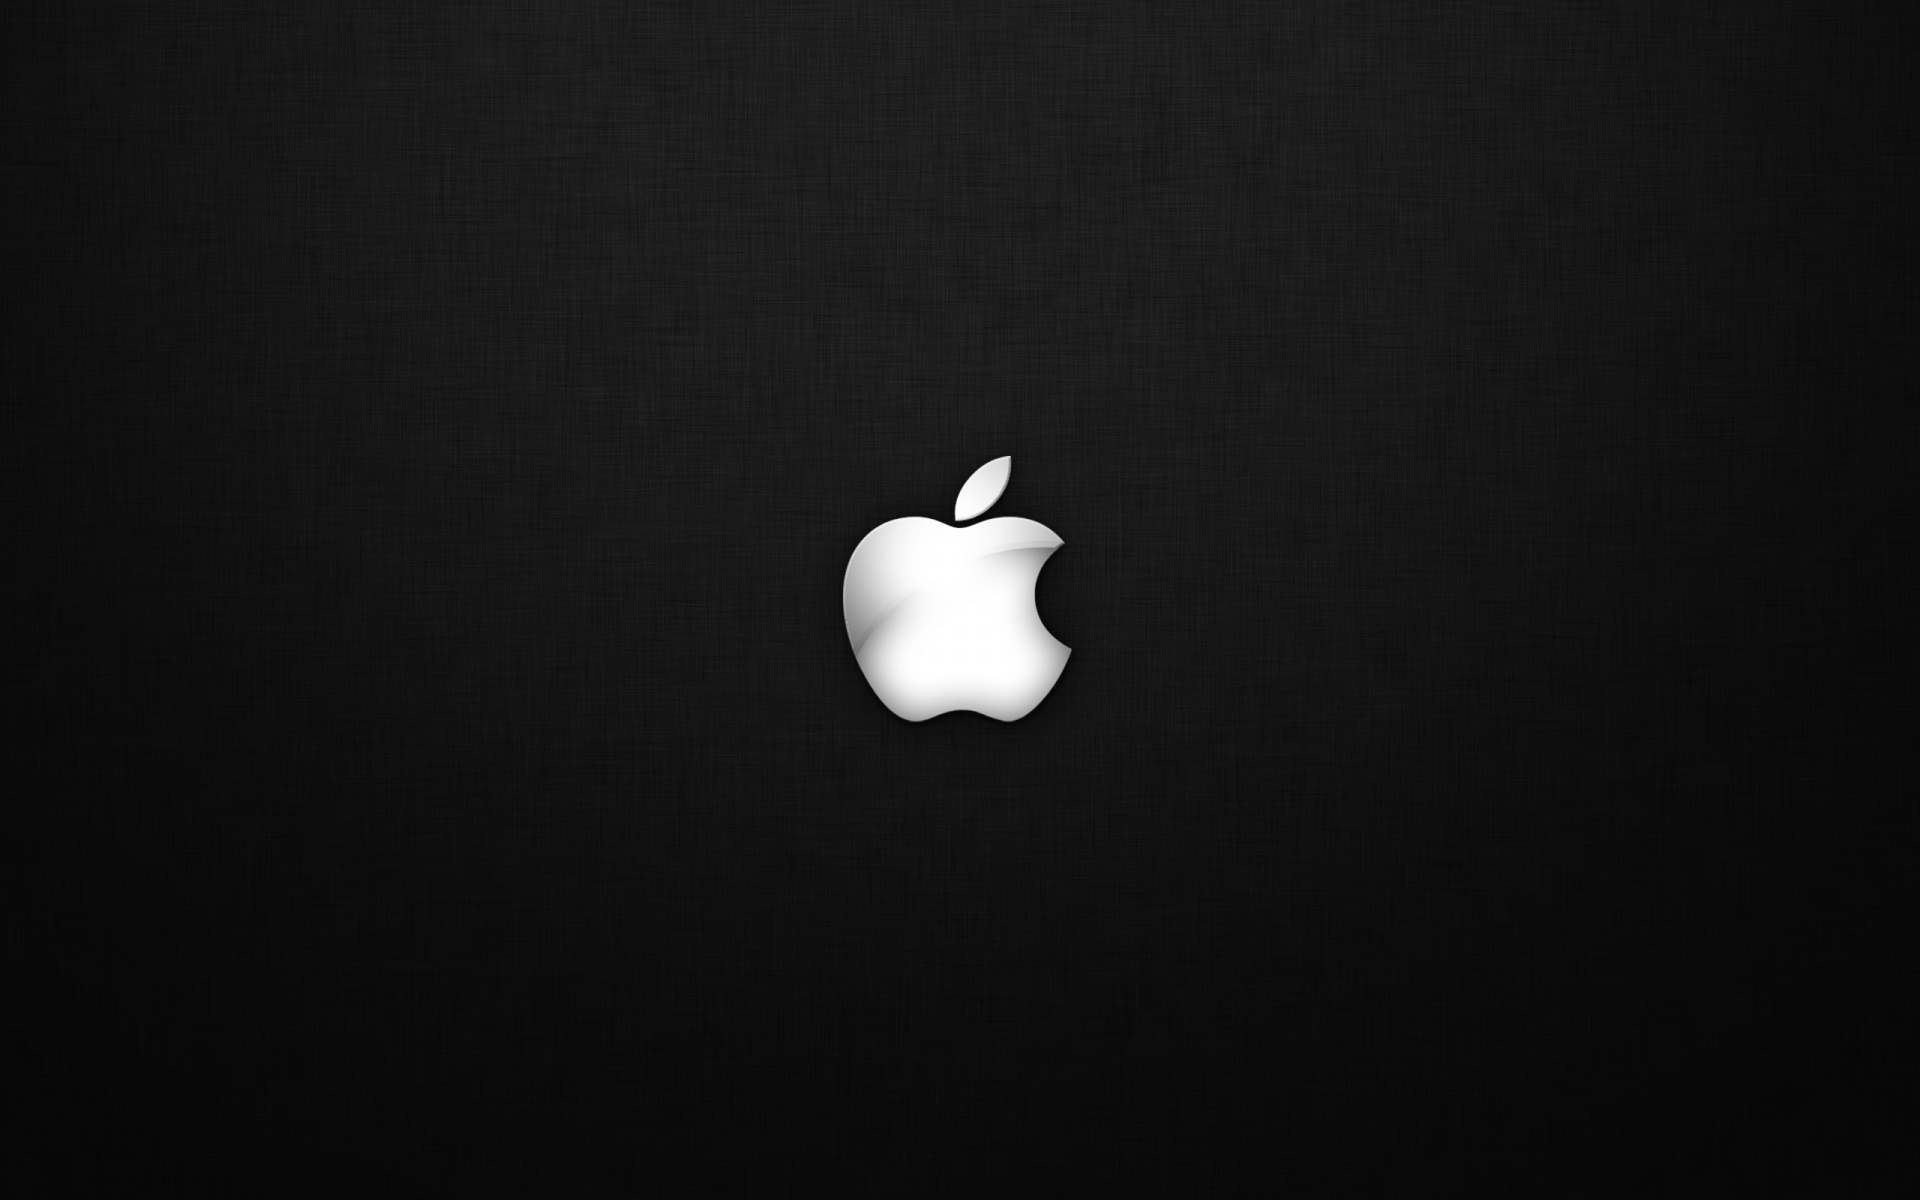 Dark Mac Apple Wallpapers Driving In Bad Weather Background Picture 1920x1200